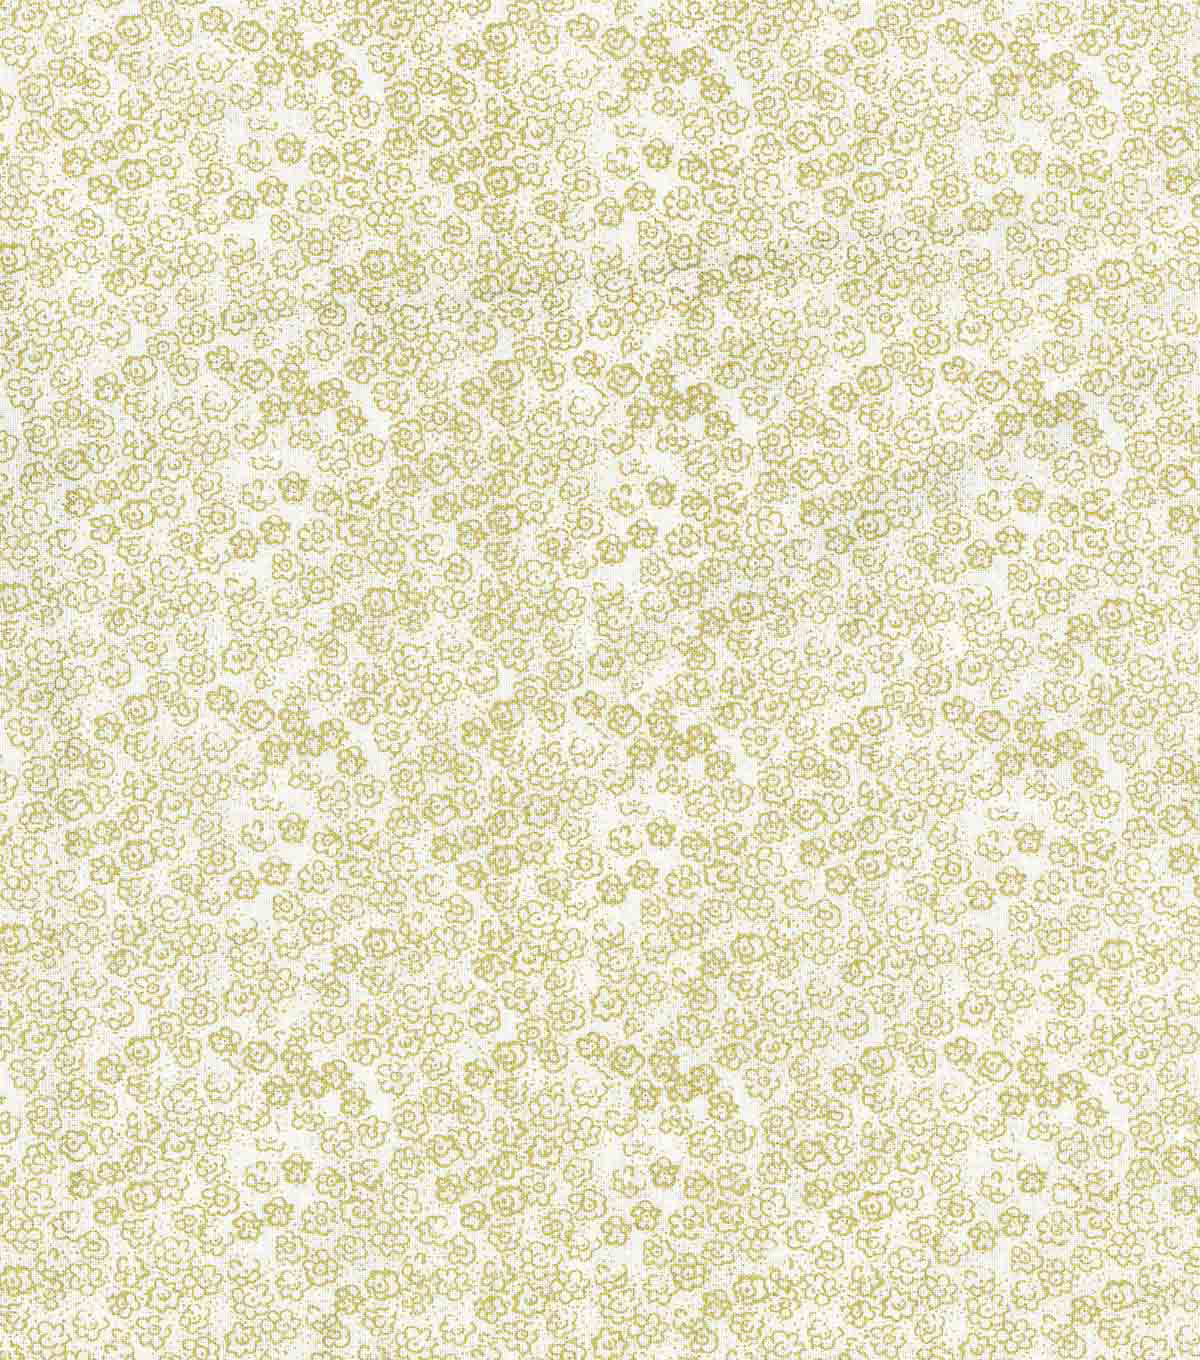 Keepsake Calico Cotton Fabric-Scribble Flowers Gold Metallic